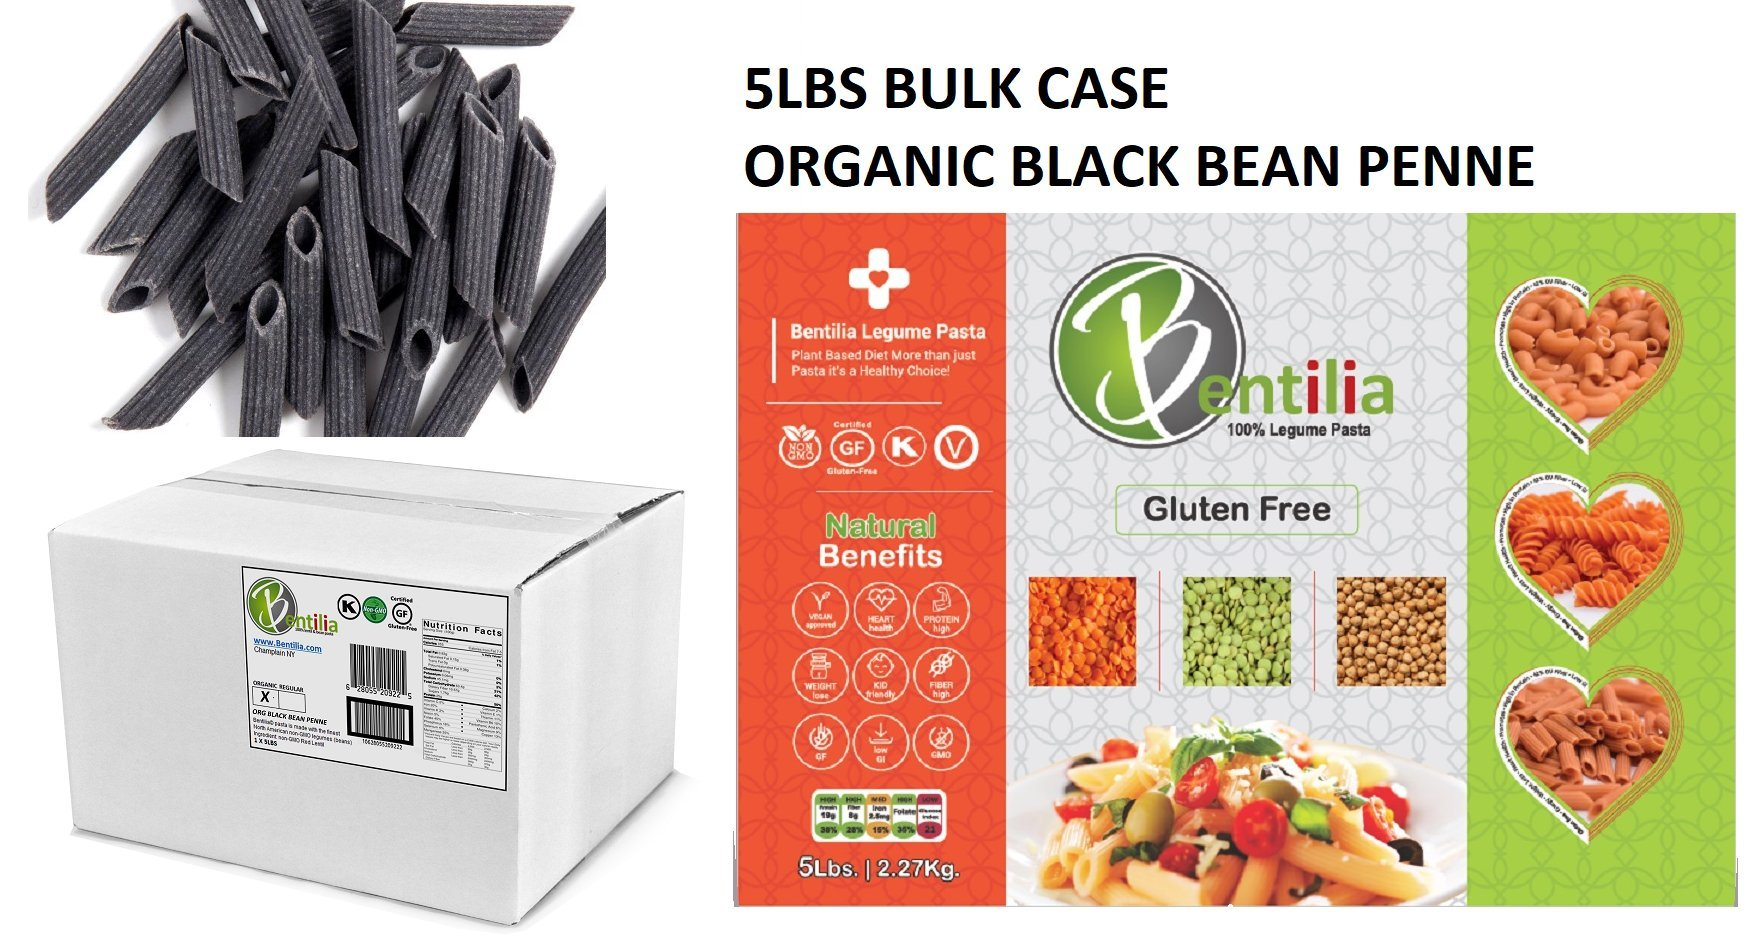 Bentilia Organic Gluten-free Black Bean Pasta, Penne Organic, 5 lb Bulk Case - 100% Natural, Low Glycemic Index, High Protein & Fiber, Non-GMO, Kosher Pasta by Bentilia